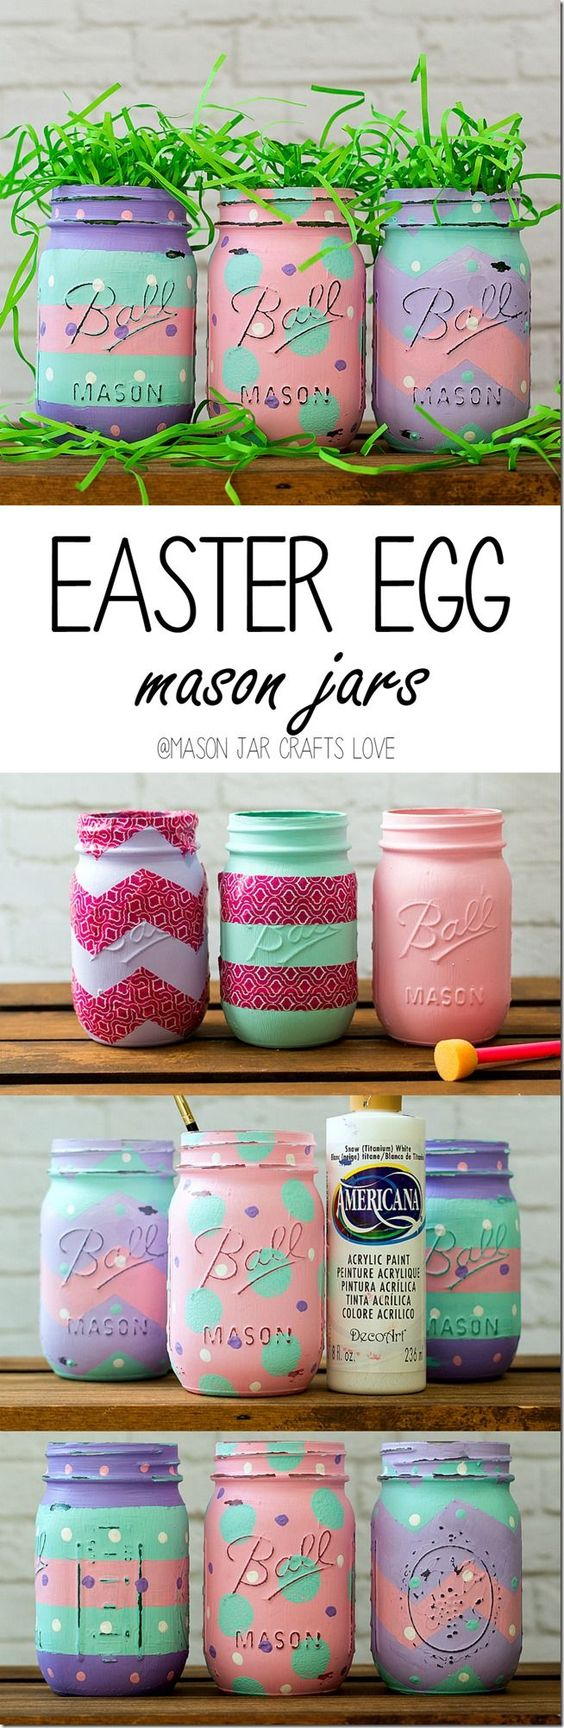 Easter Egg Mason Jars.